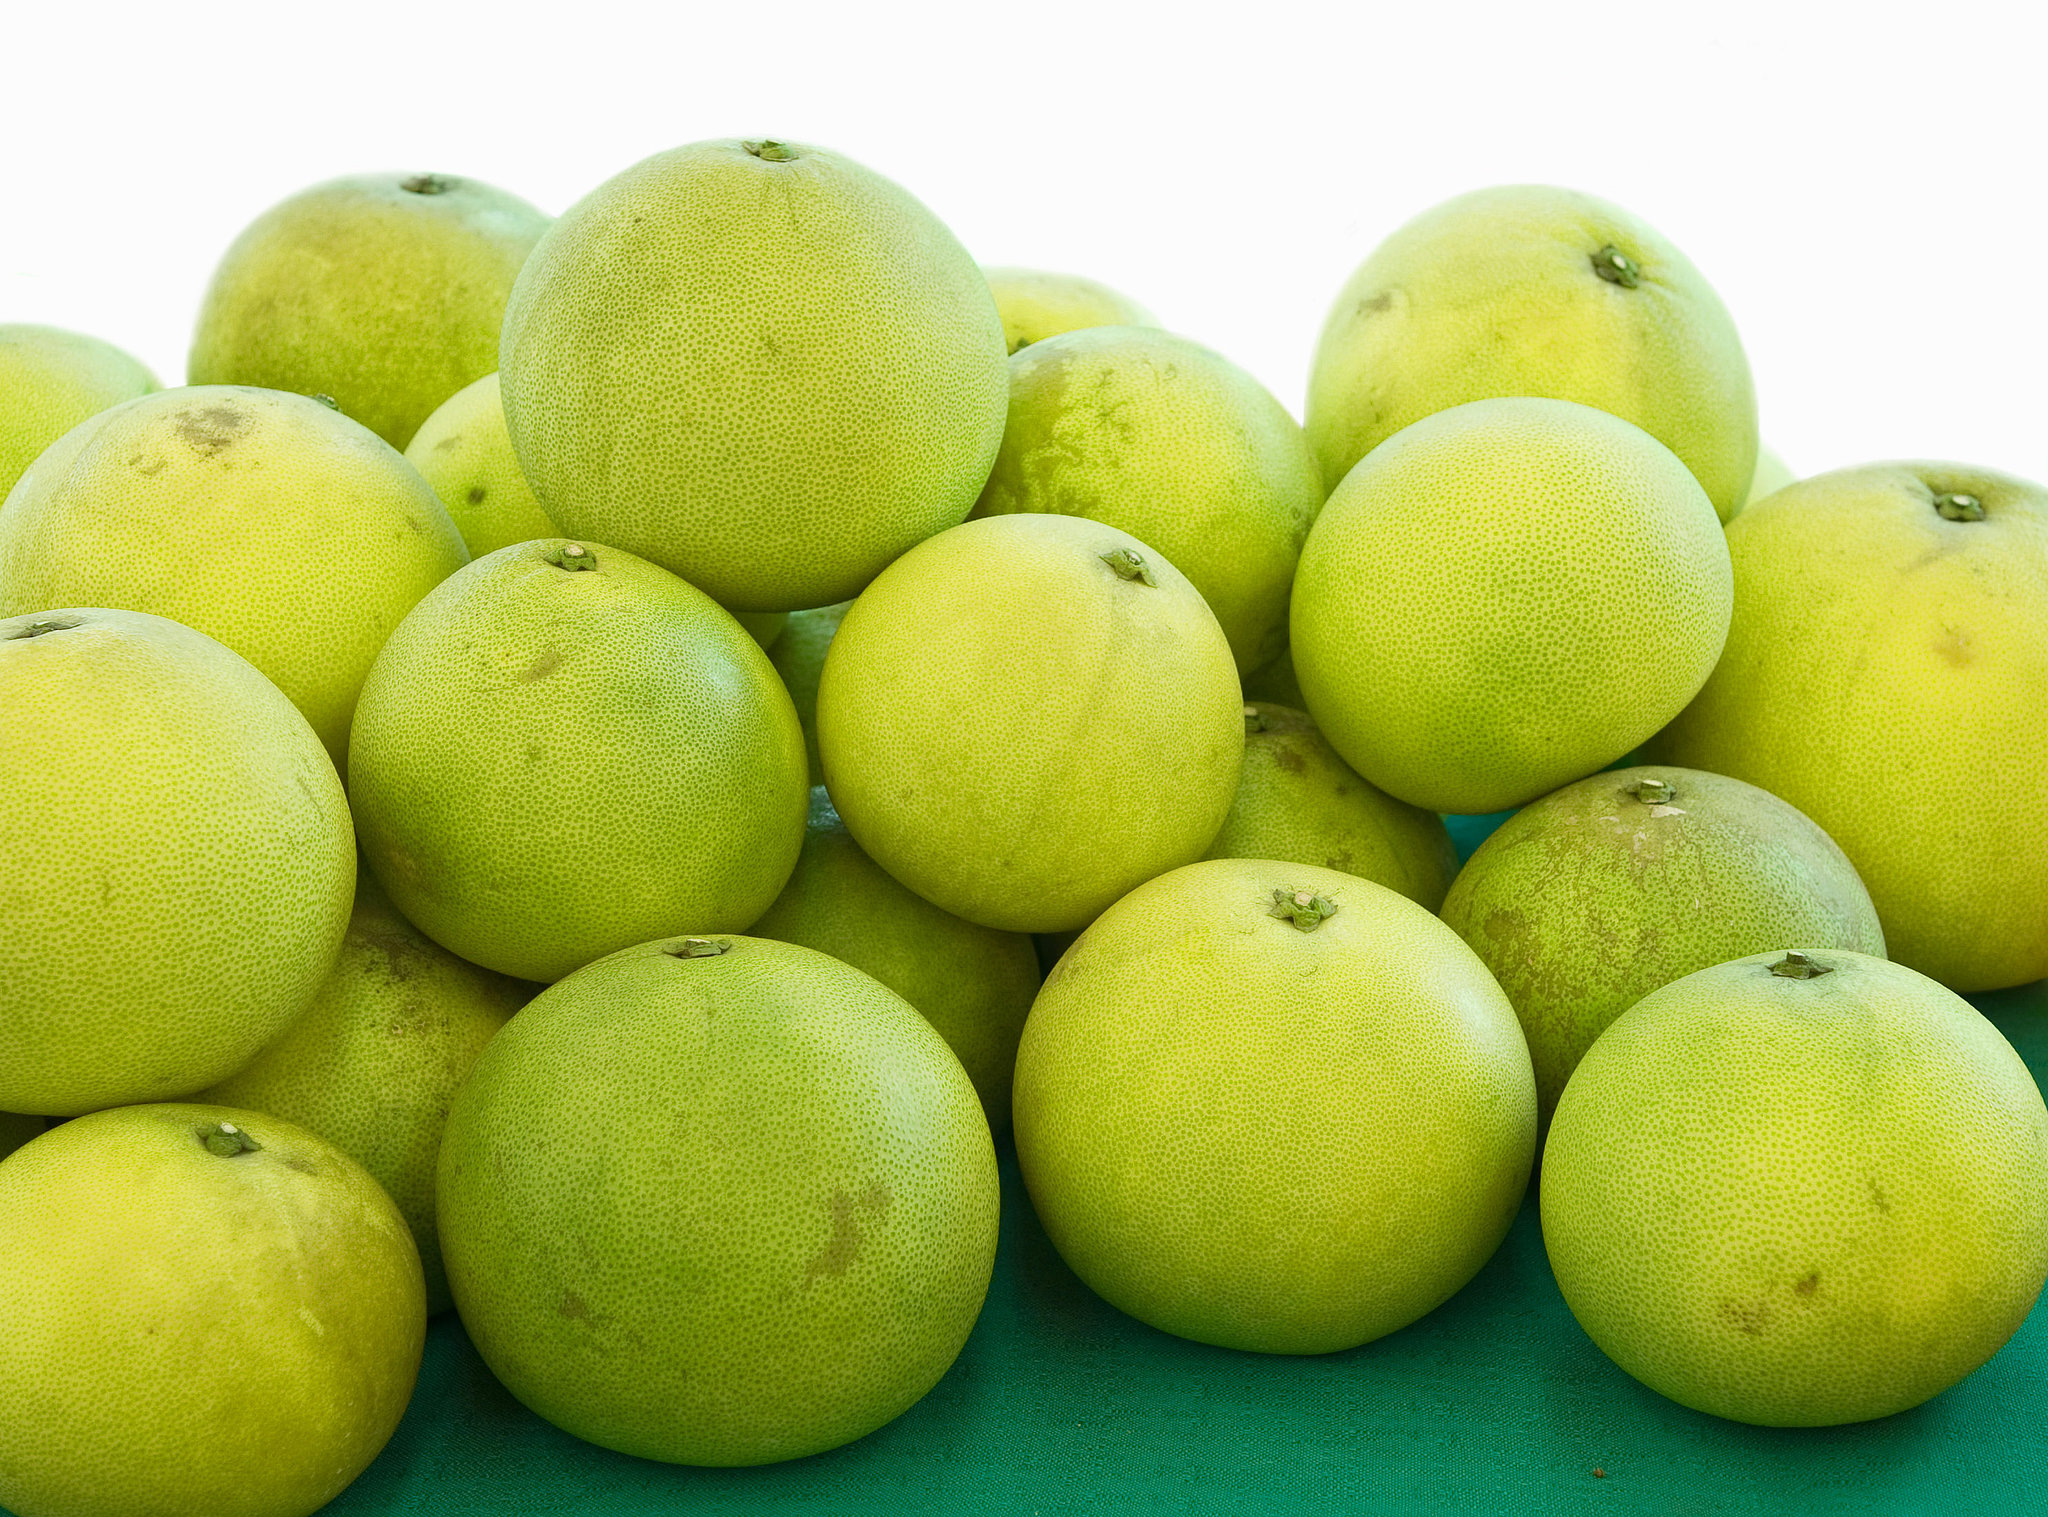 Pomelos, grapefruits' larger cousins, are available from November ...: popsugar.com/food/photo-gallery/31673990/image/31674174/pomelos